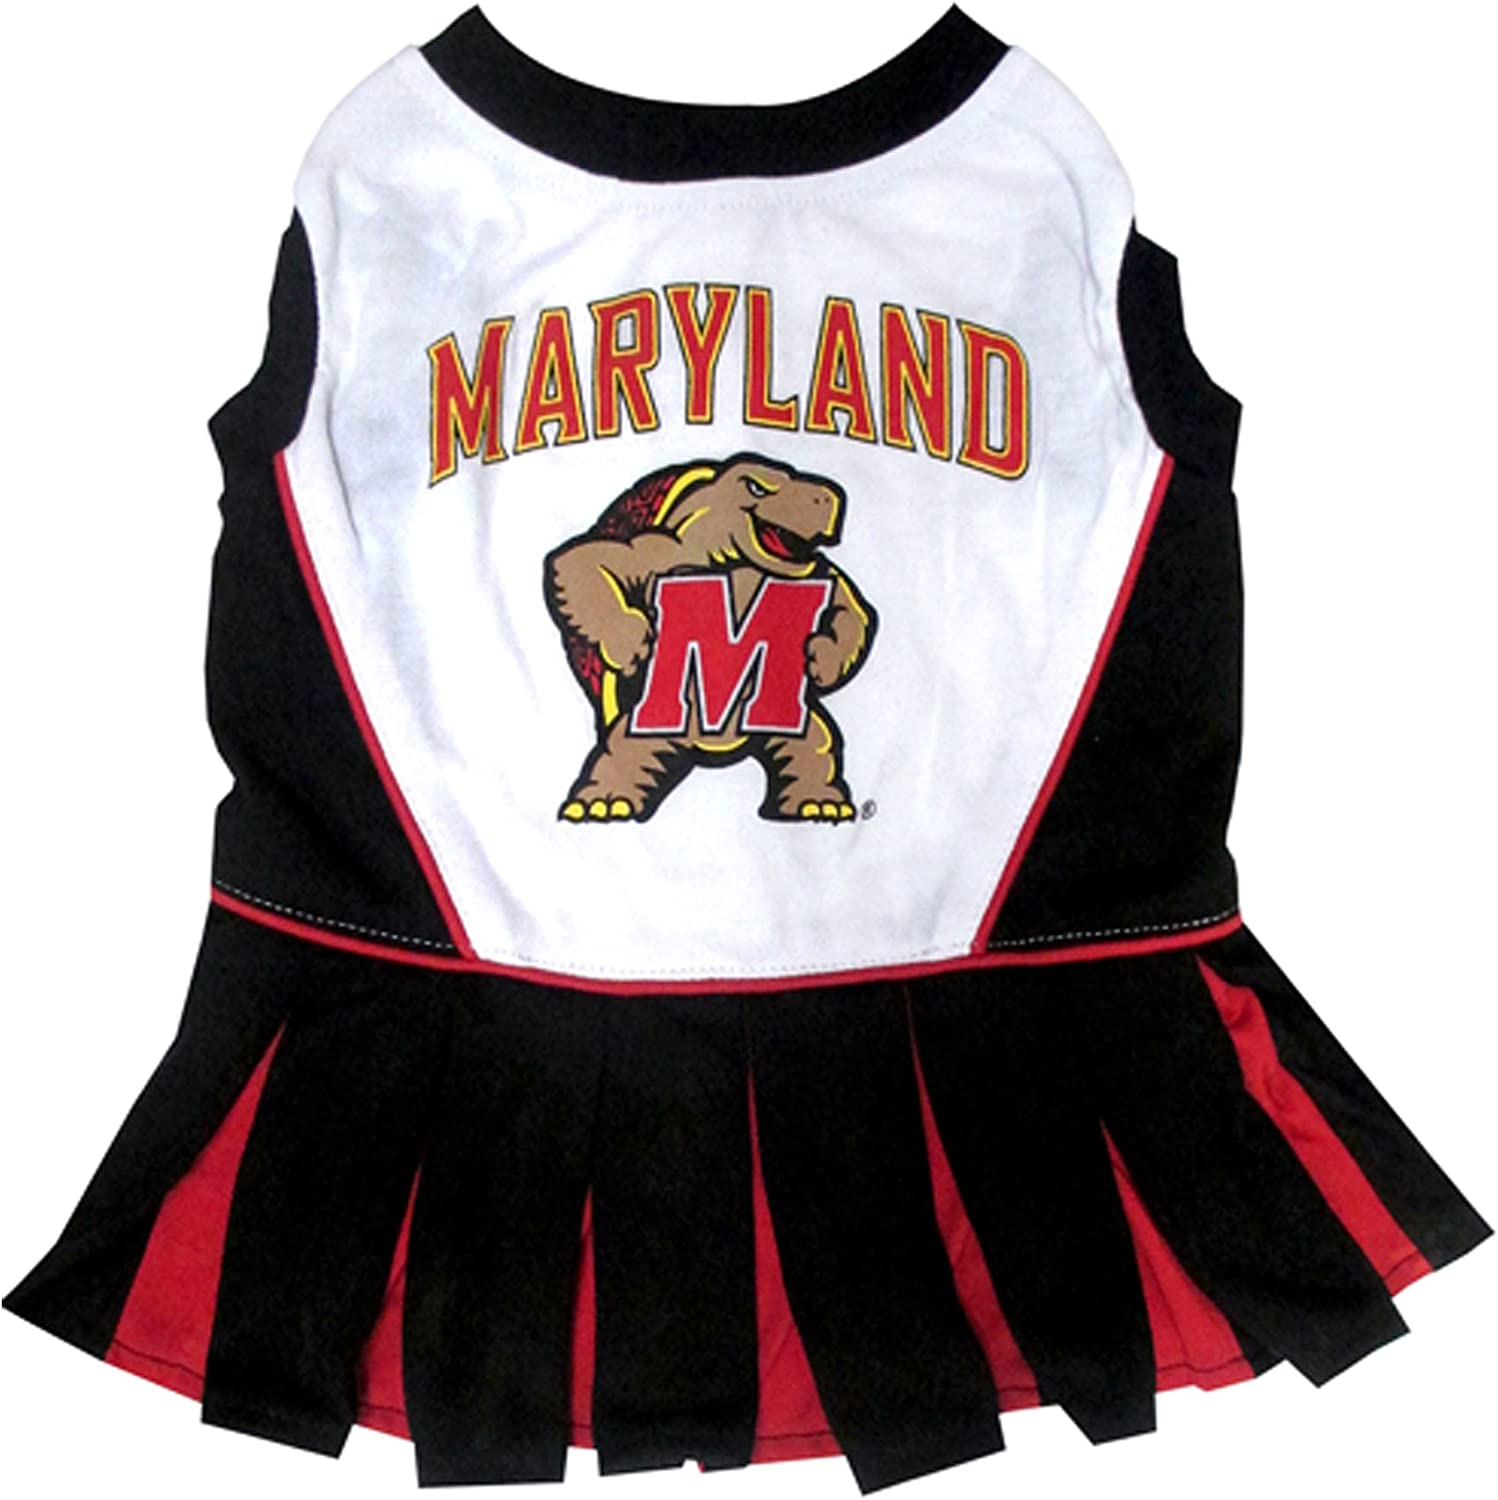 Pets First Collegiate Maryland Terrapins Dog Cheerleader Dress, Medium